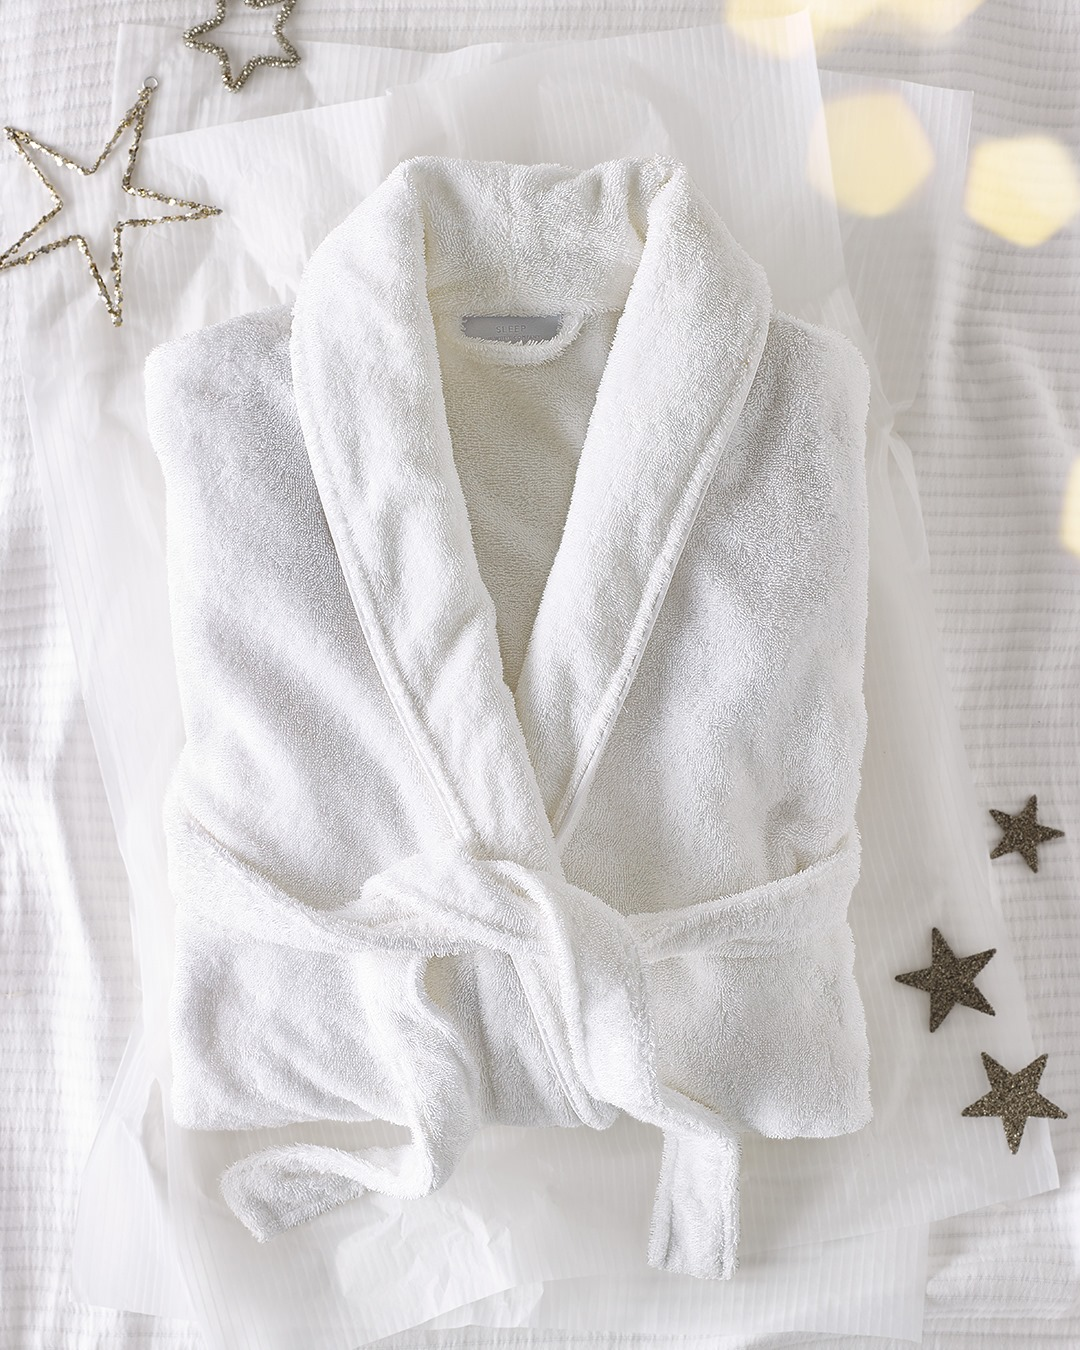 The White Company sells beautiful home items, not only linen, but also candles, and fluffy robes to wear to bed.